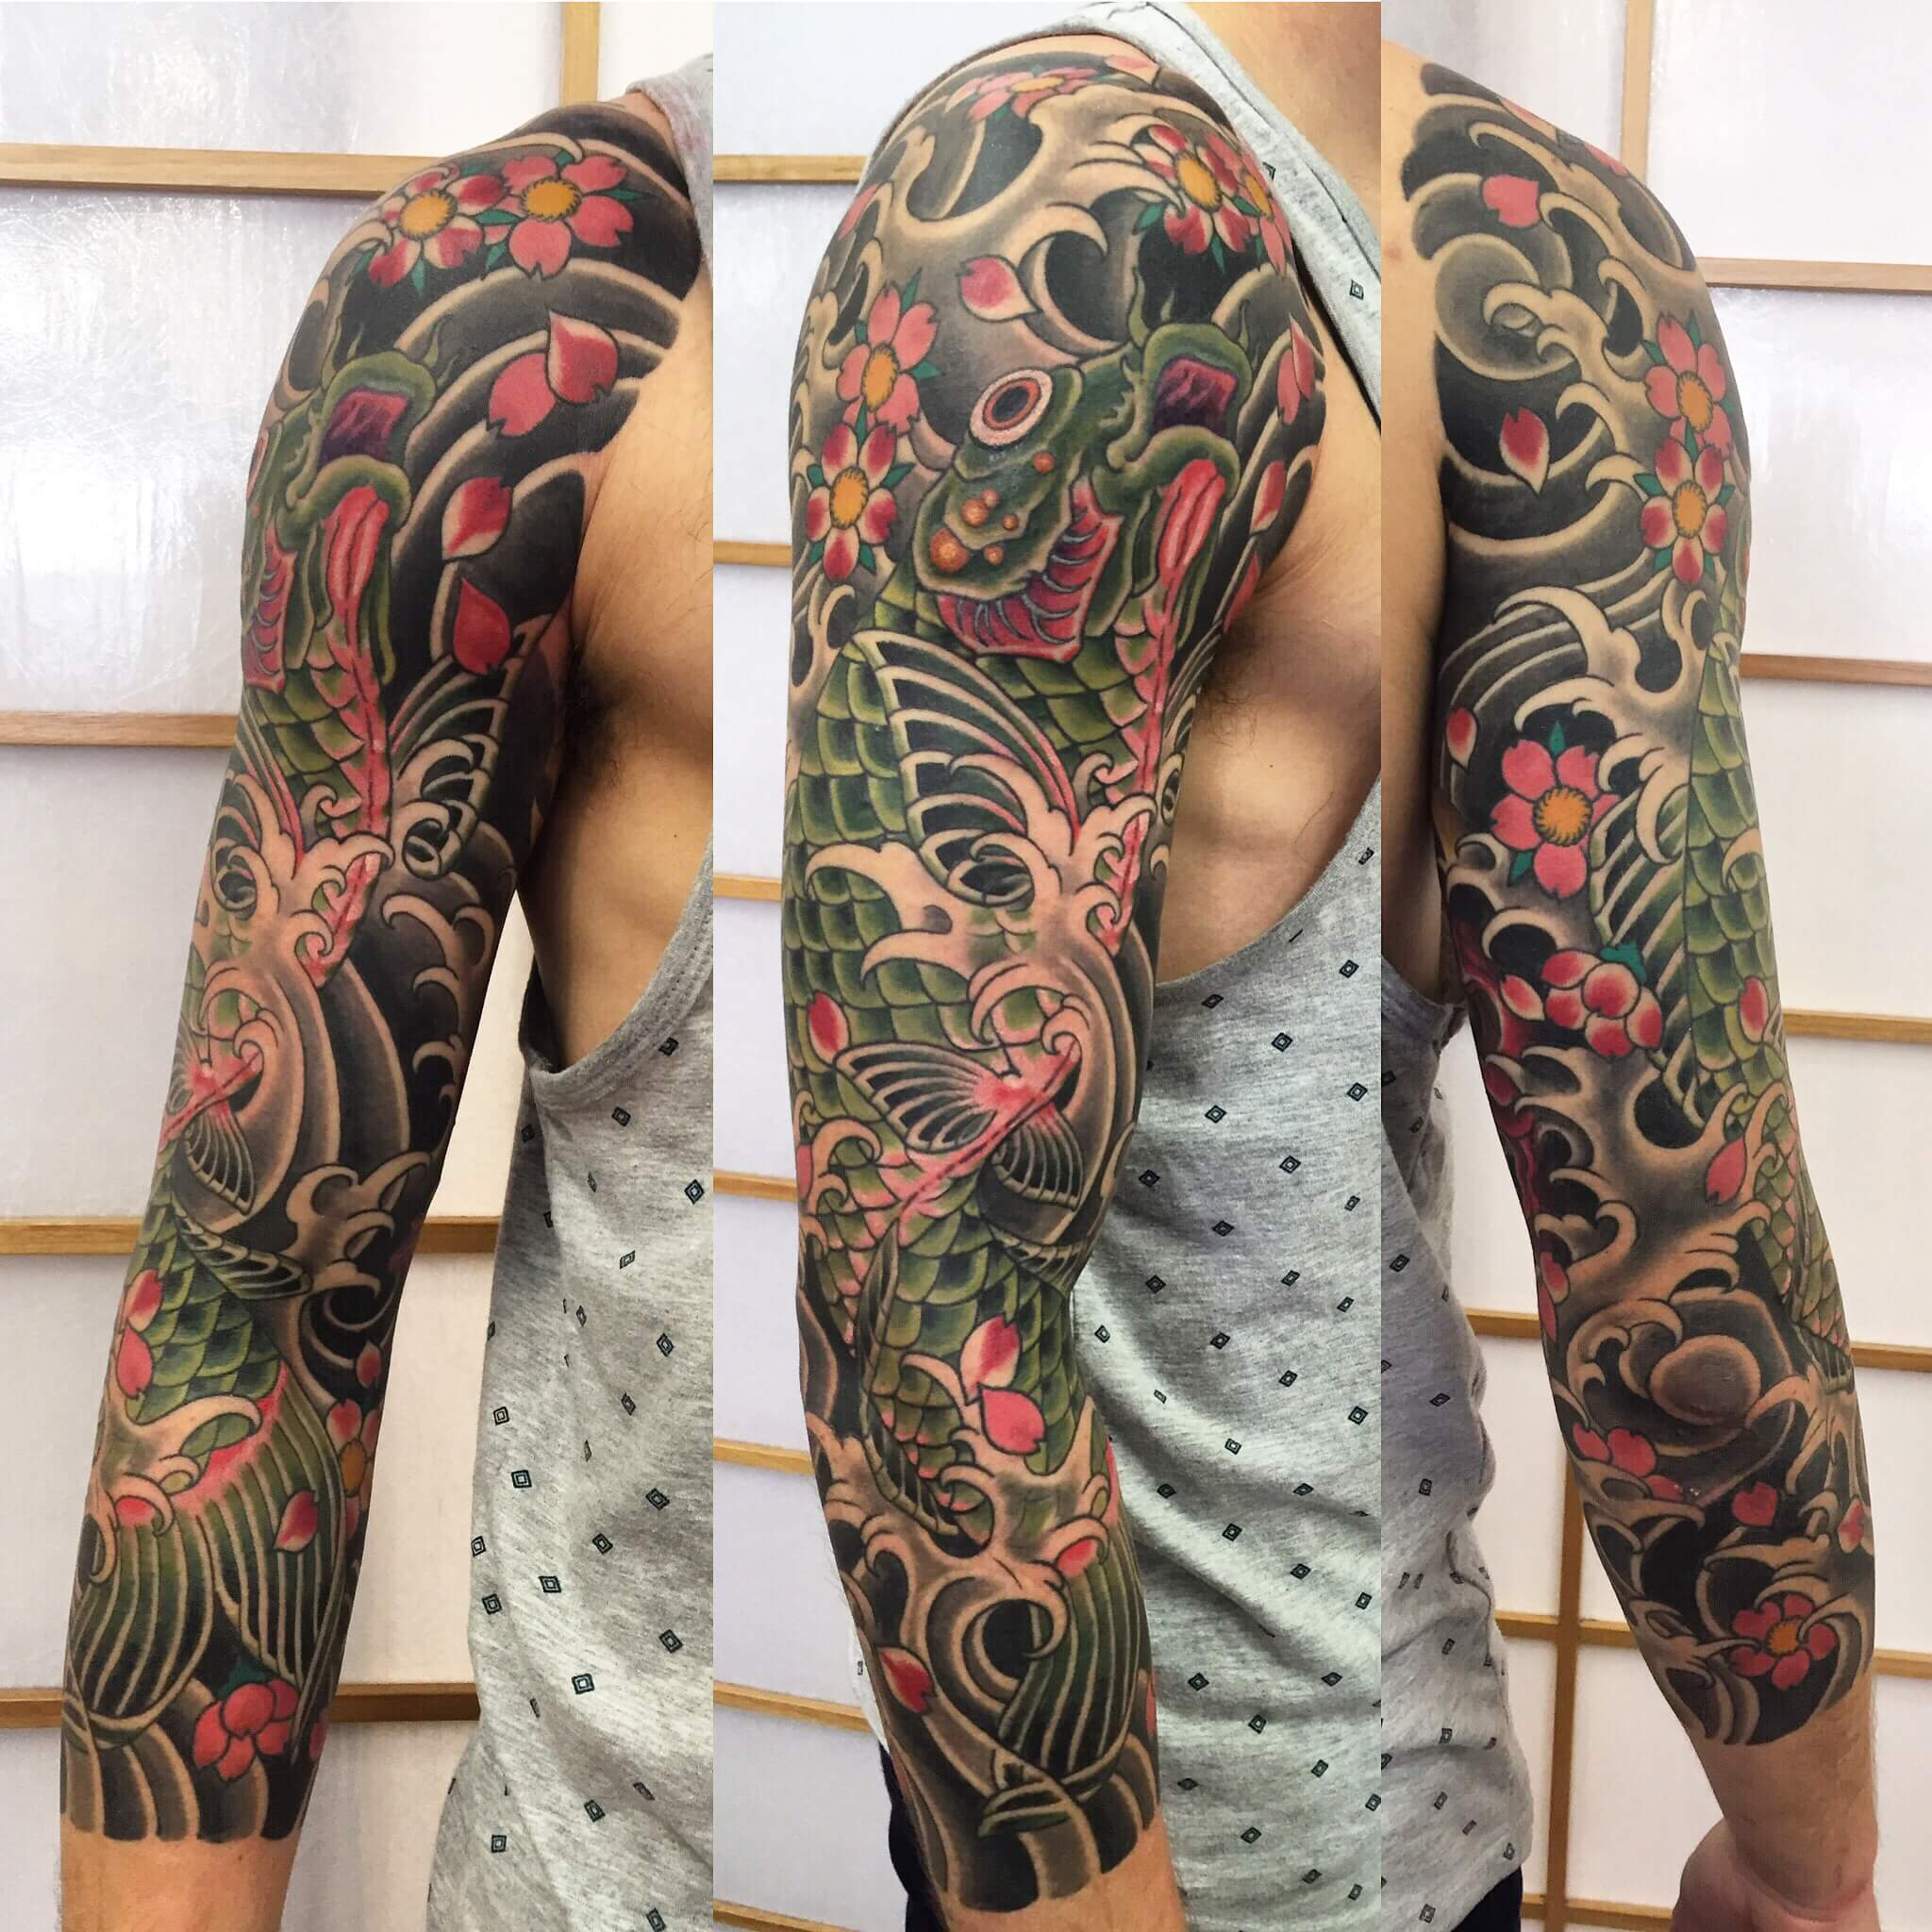 Full Japanese Sleeve Koi in water and cherry blossoms